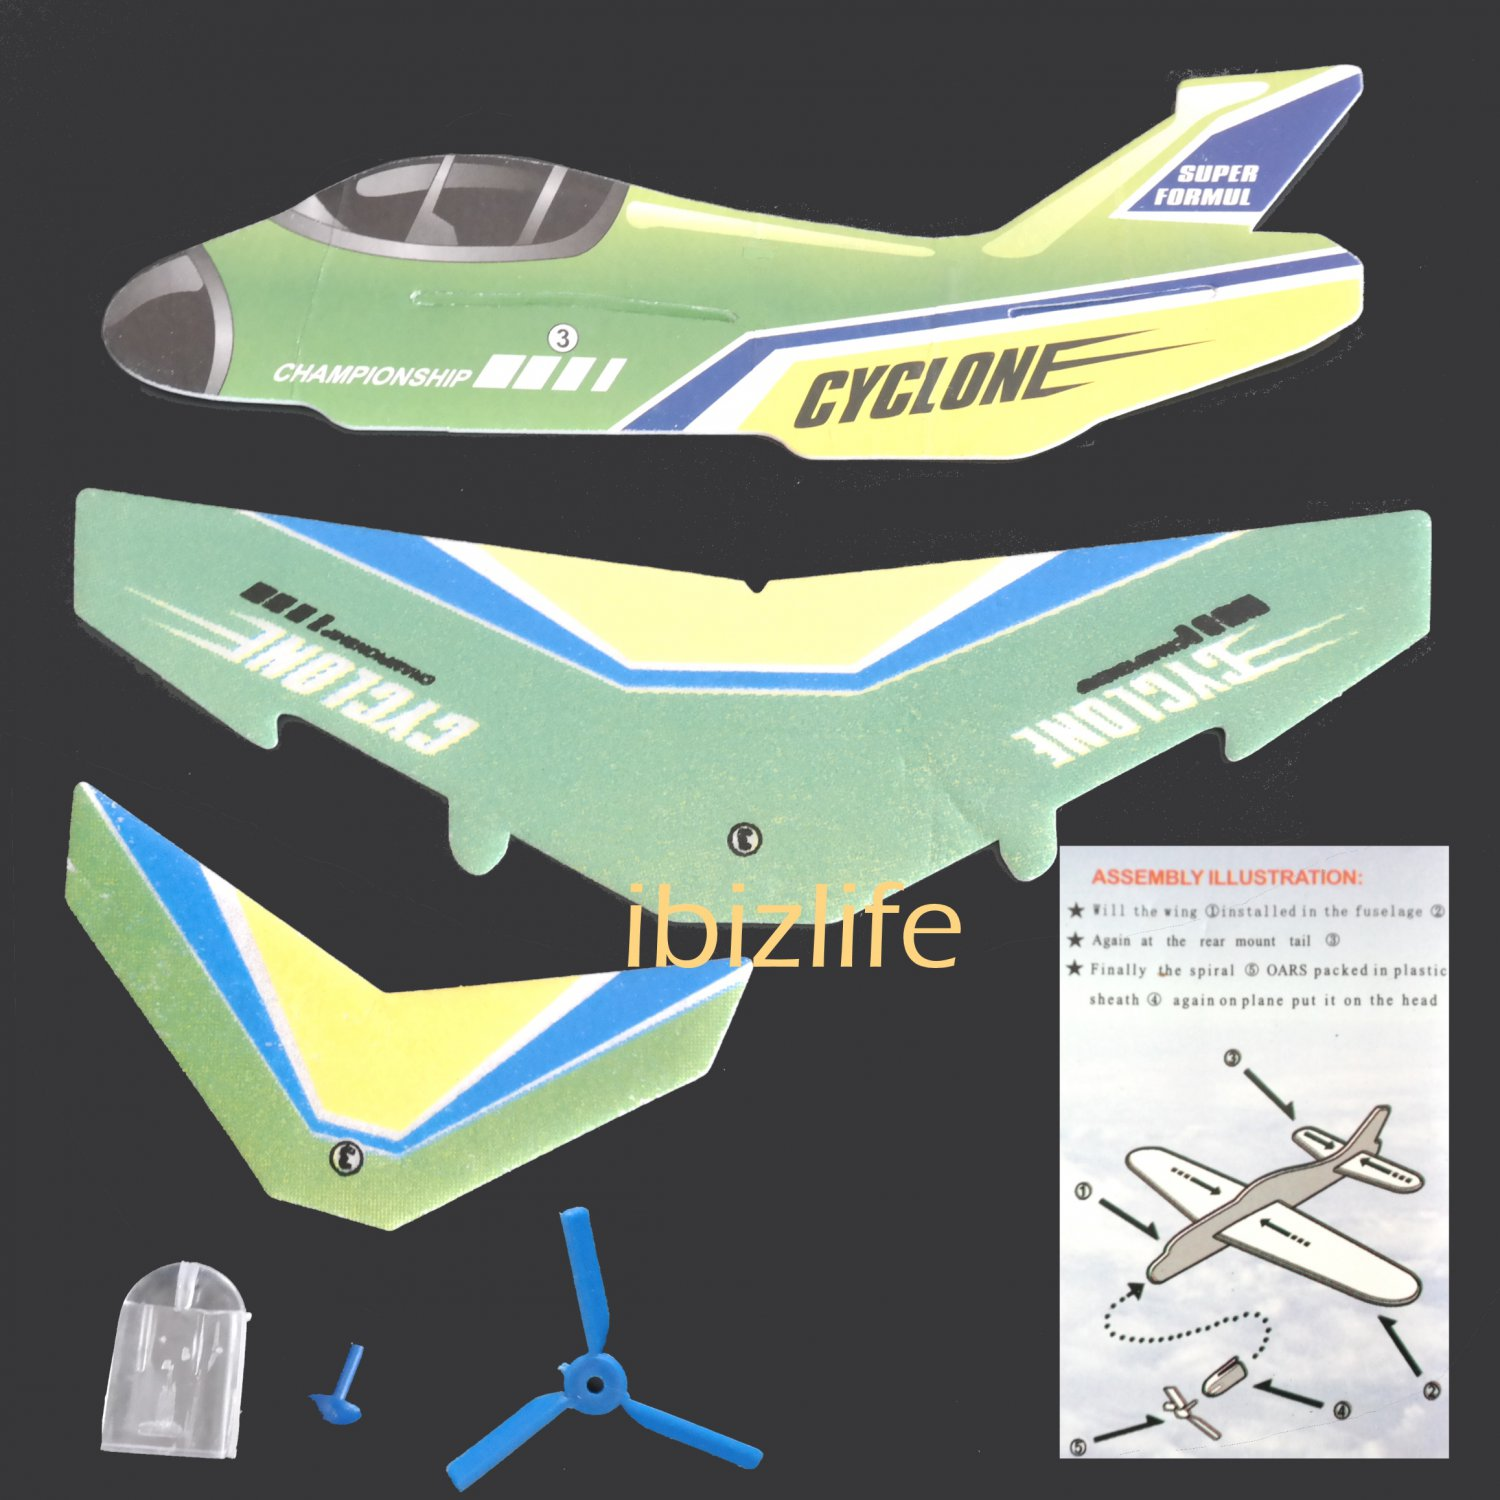 3D DIY Paper model flying pocket planes as gift for children and kids -   Championship (pc35)